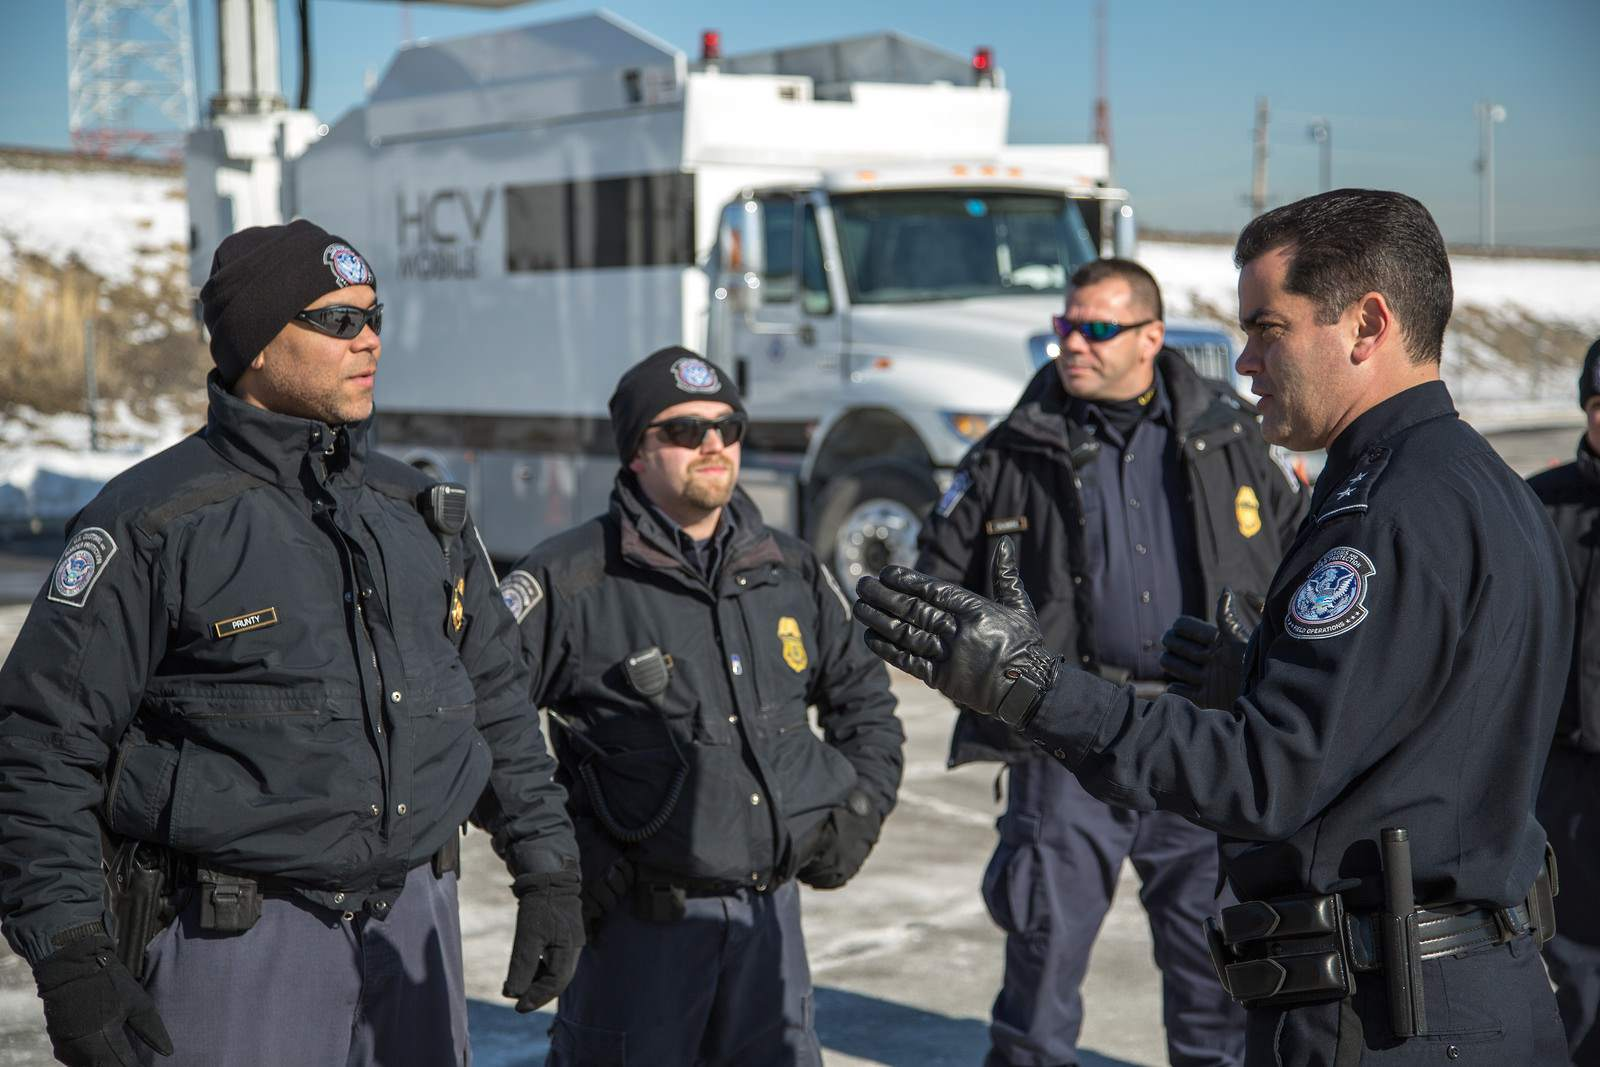 uniformed police jobs in the us government